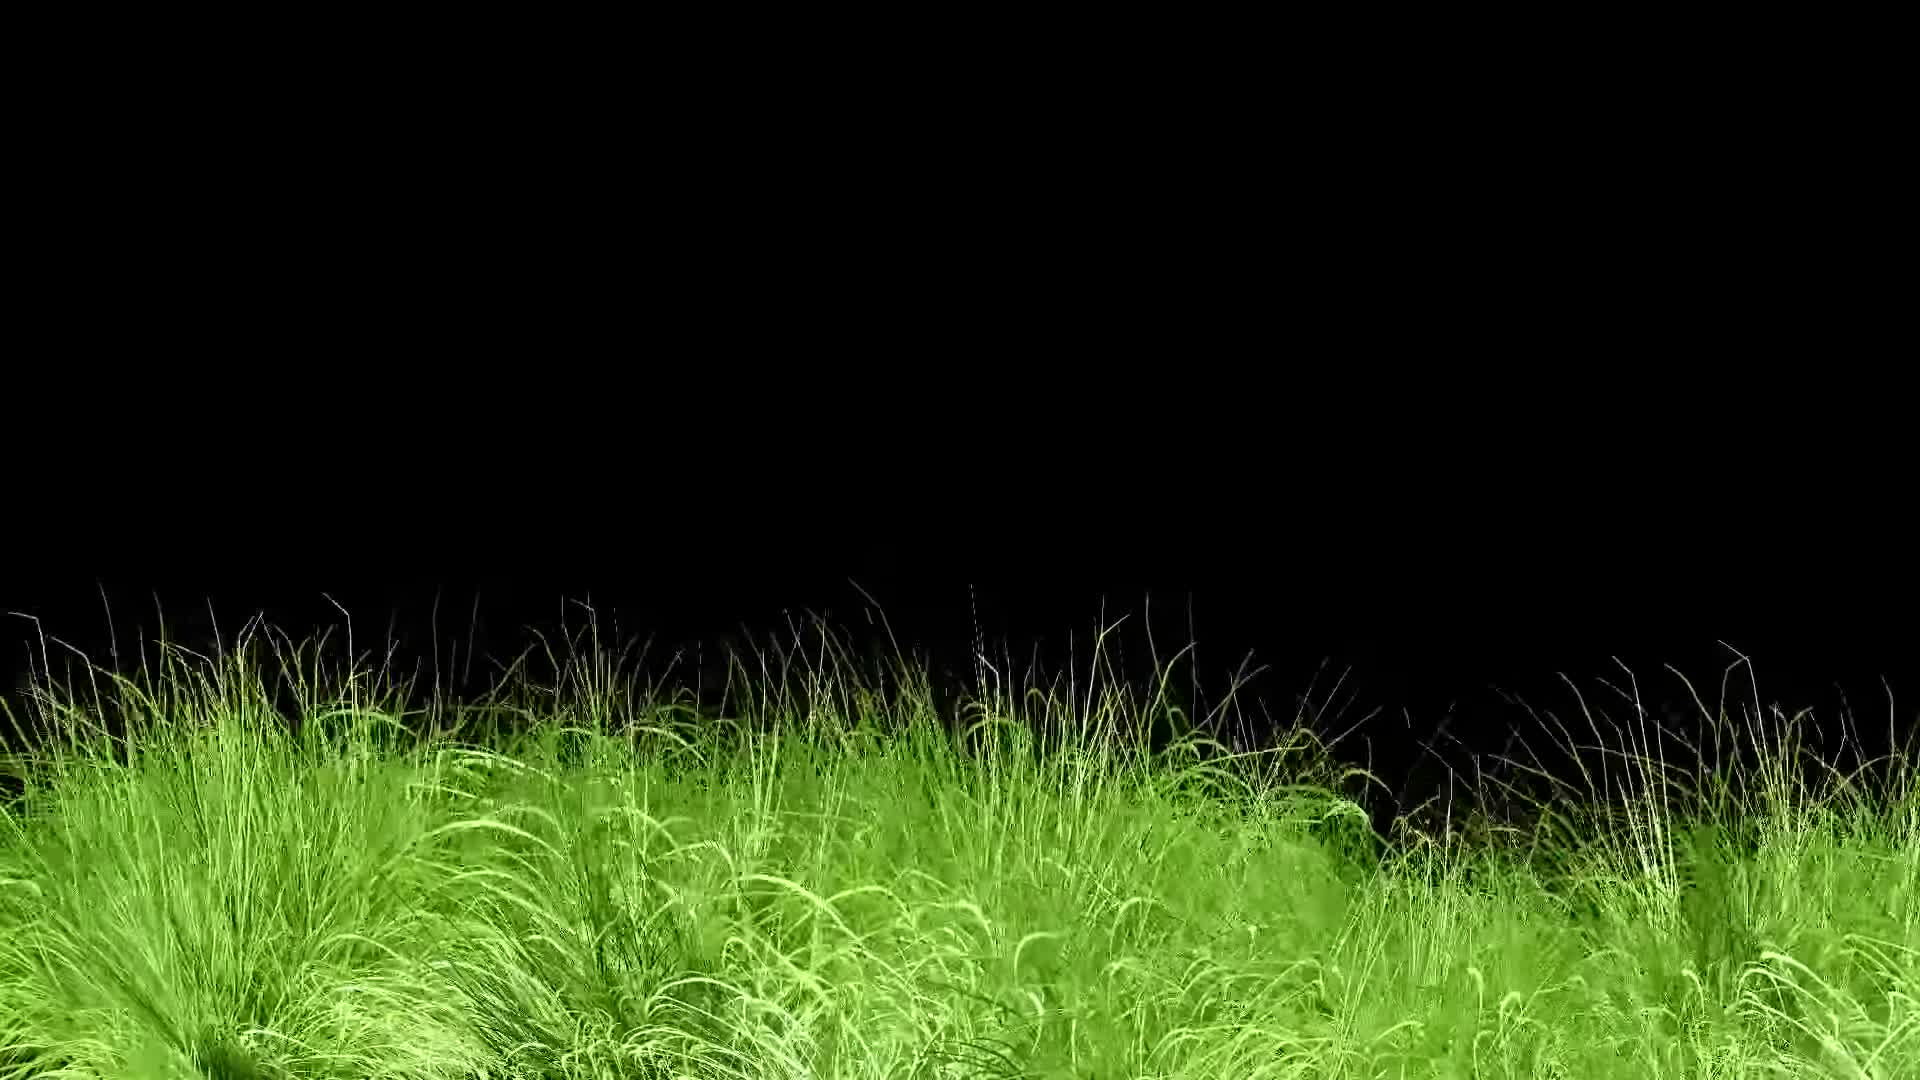 Animated Grass Motion Black Screen Background Gif By Colgate Smiile Gfycat